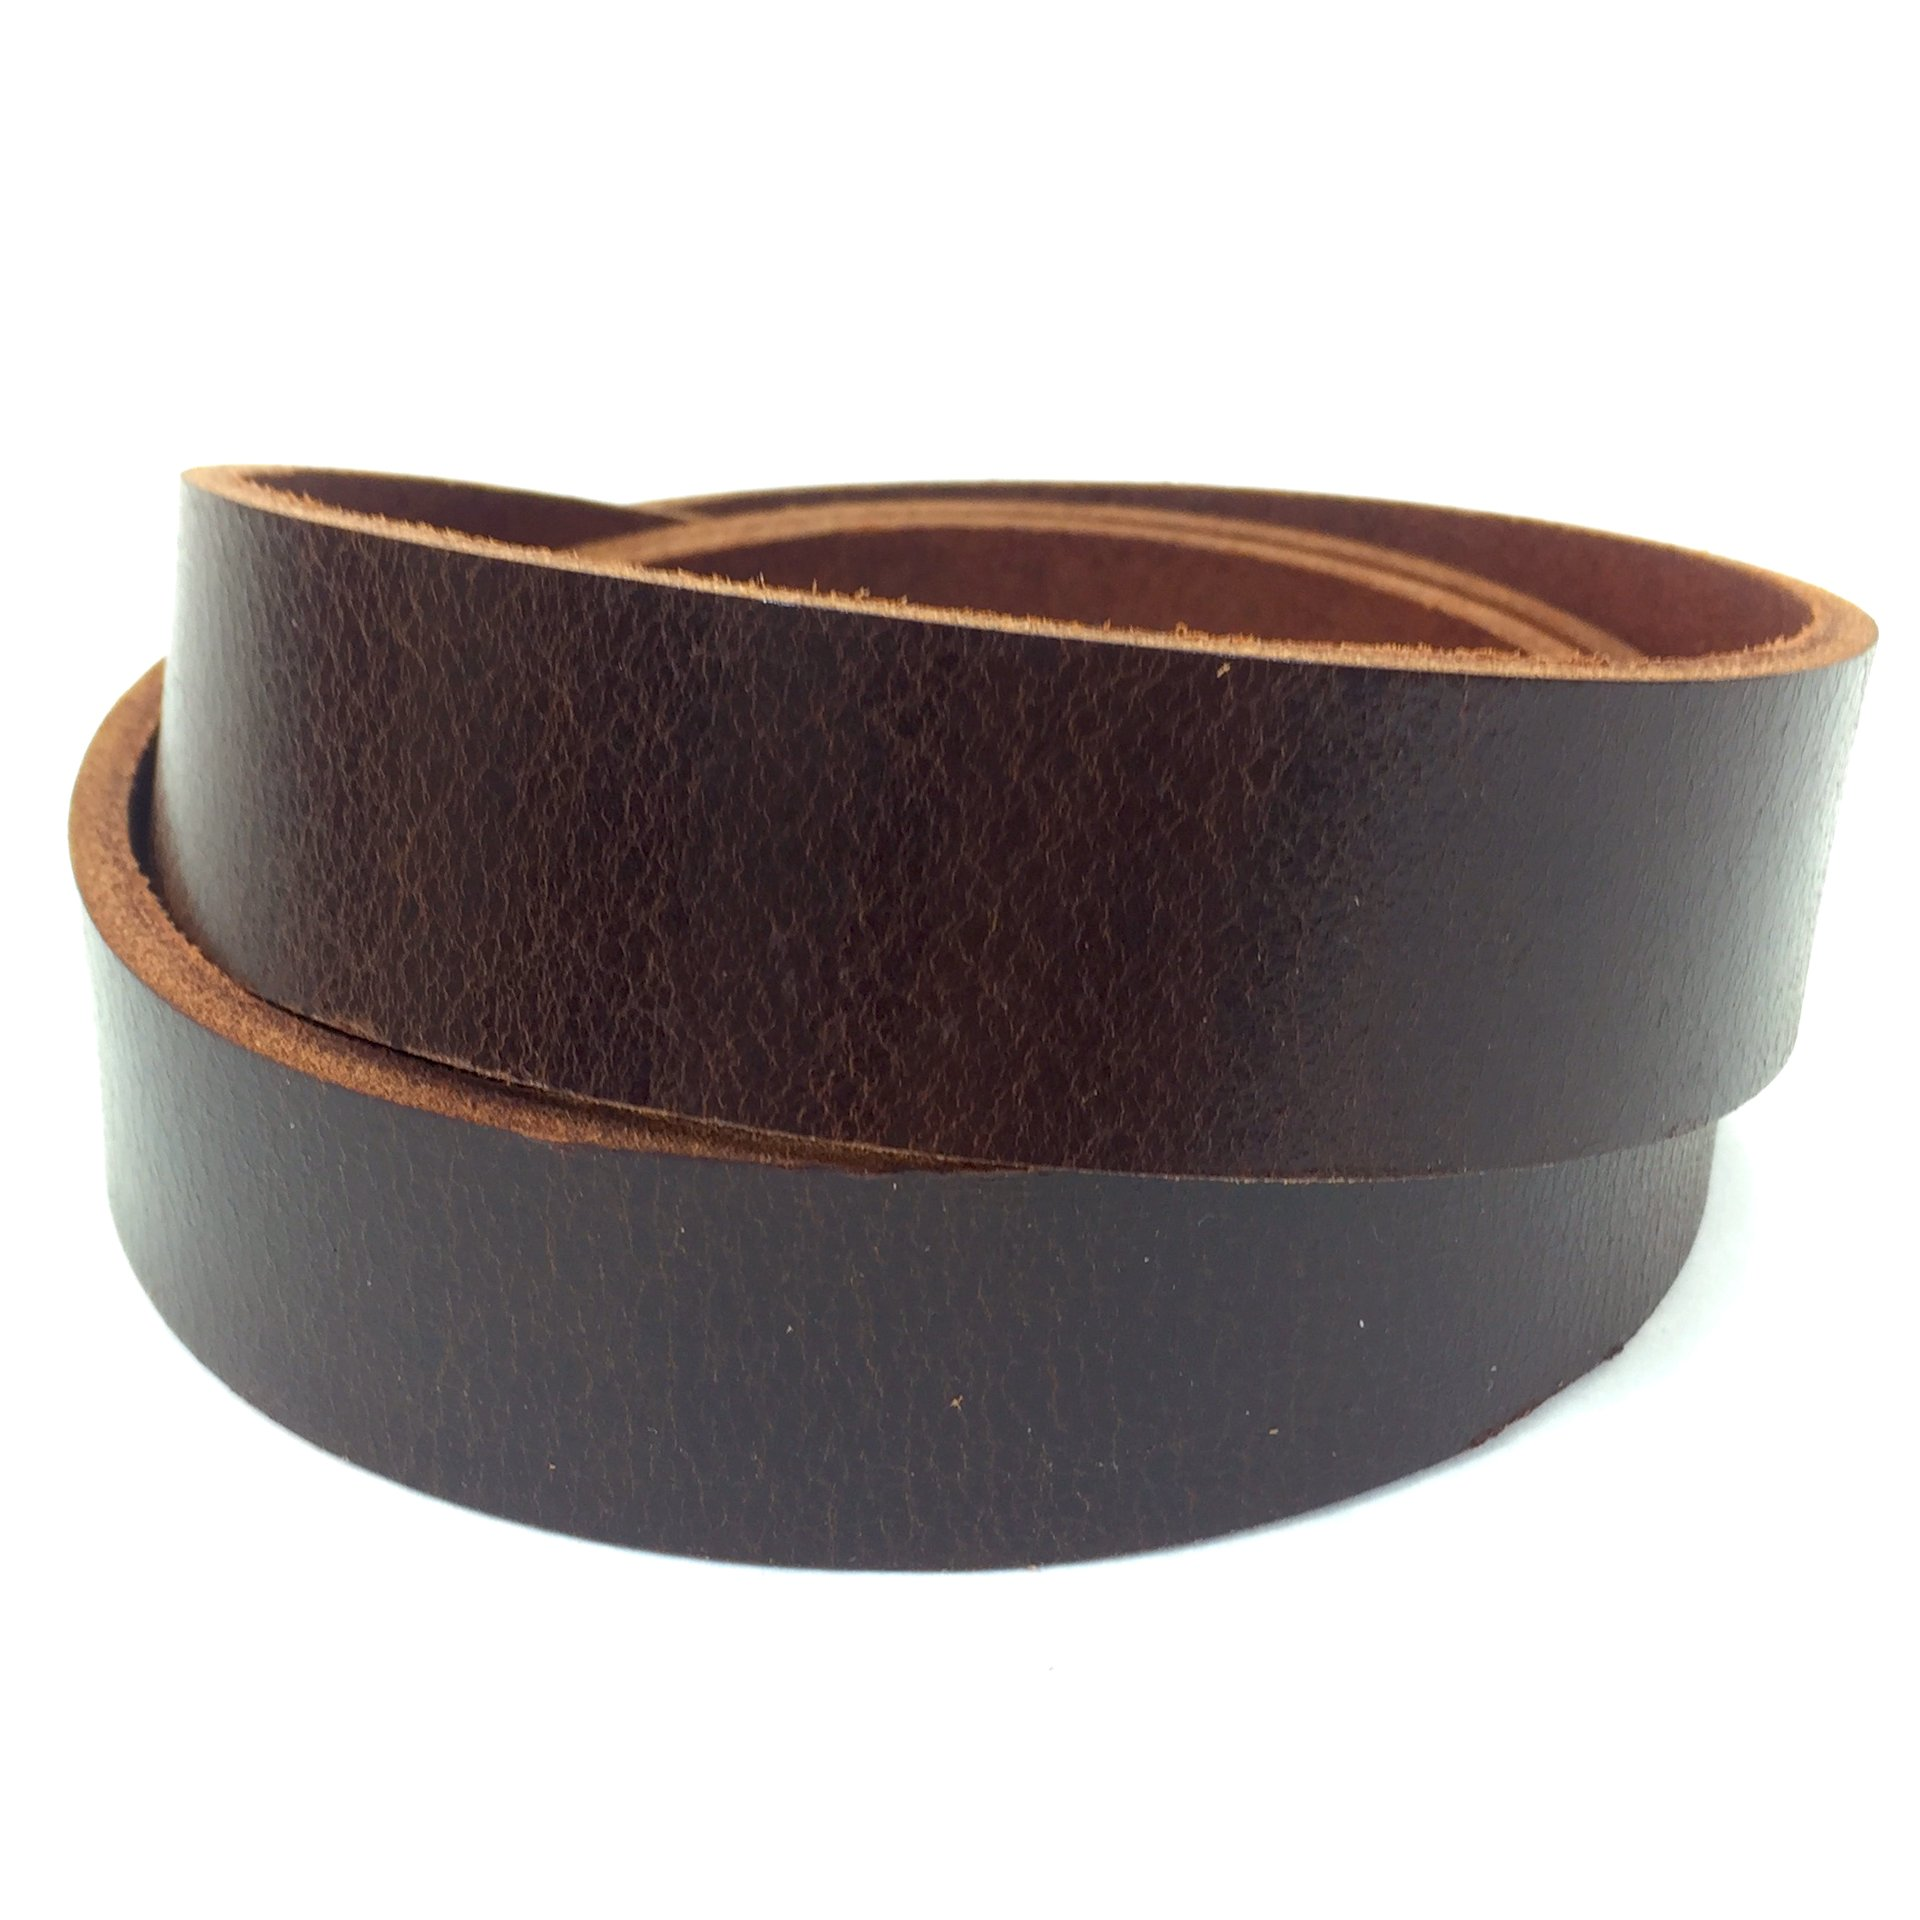 "Springfield Leather Company's Buffalo Leather Strips (1-1/4"", Antique Mahogany)"